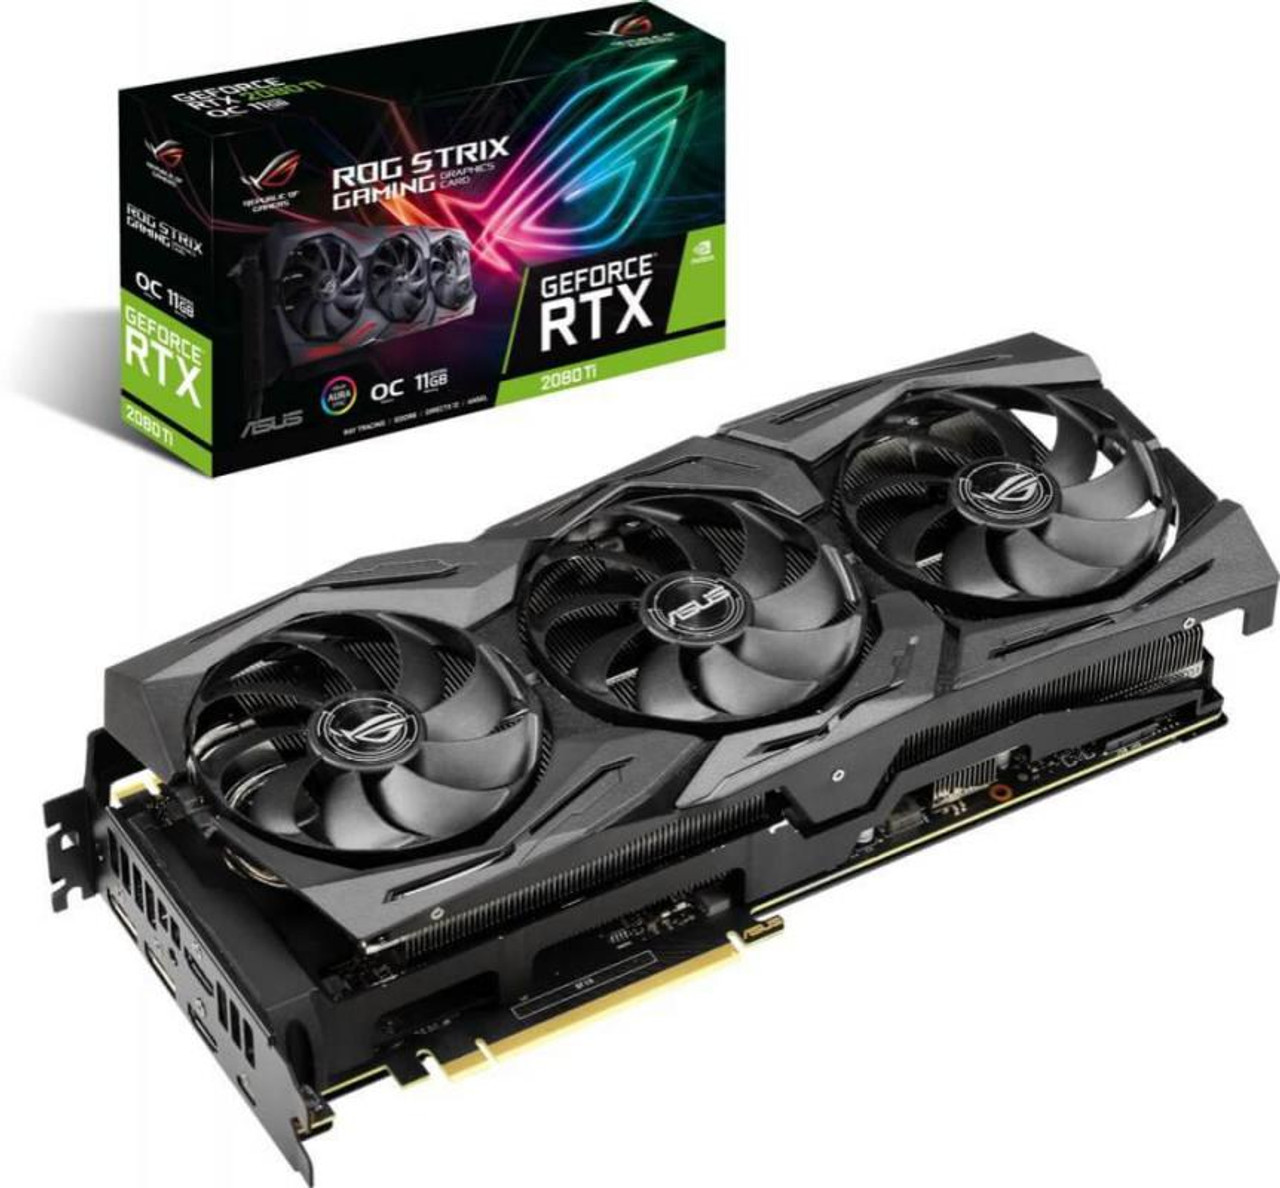 Product image for Asus ROG Strix RTX 2080 Ti OC Edition 11GB | CX Computer Superstore